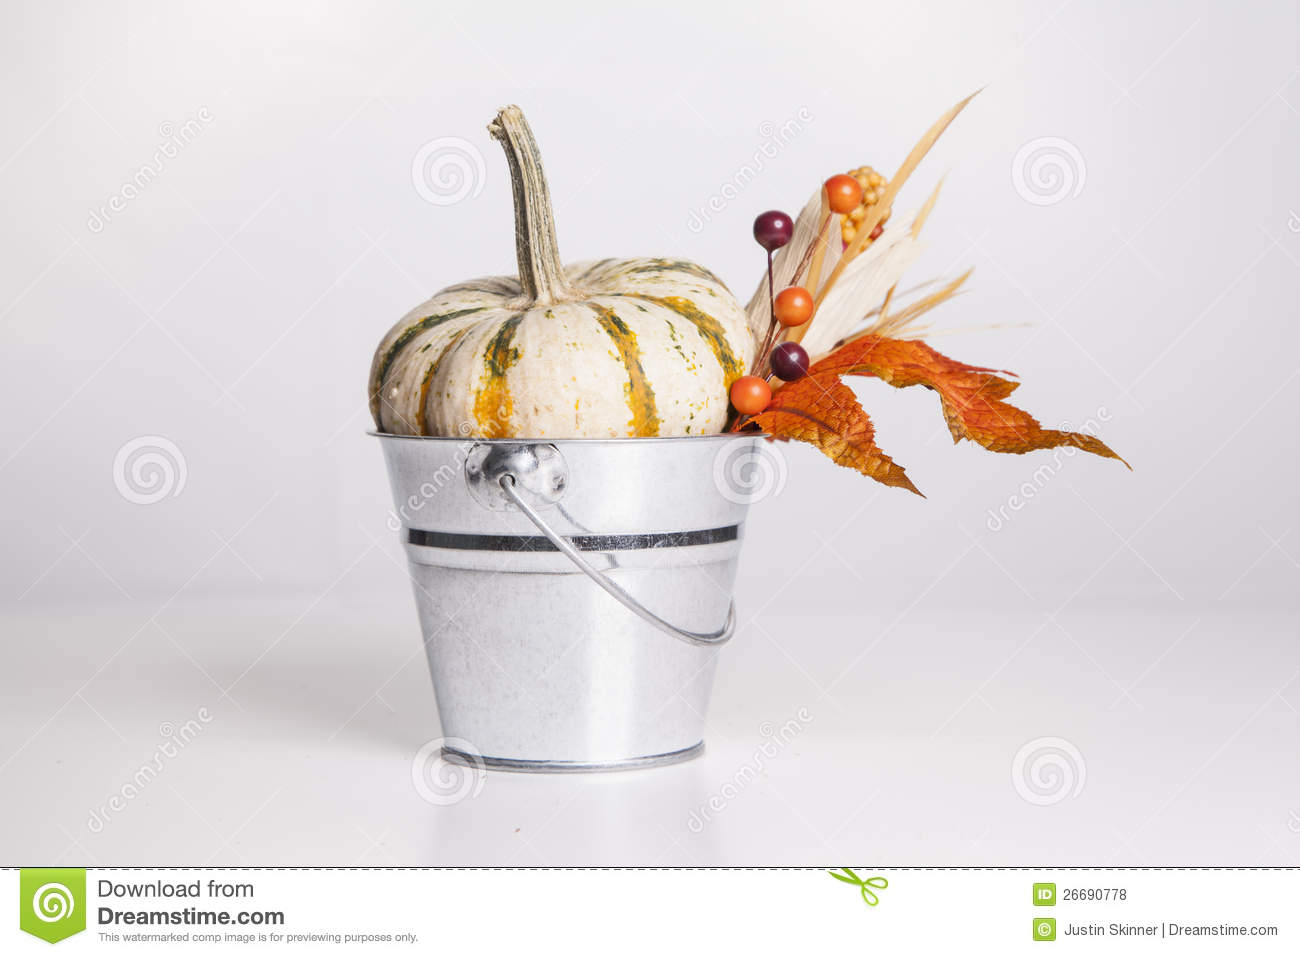 Bucket with fall decor royalty free stock photos image for How to decorate a bucket